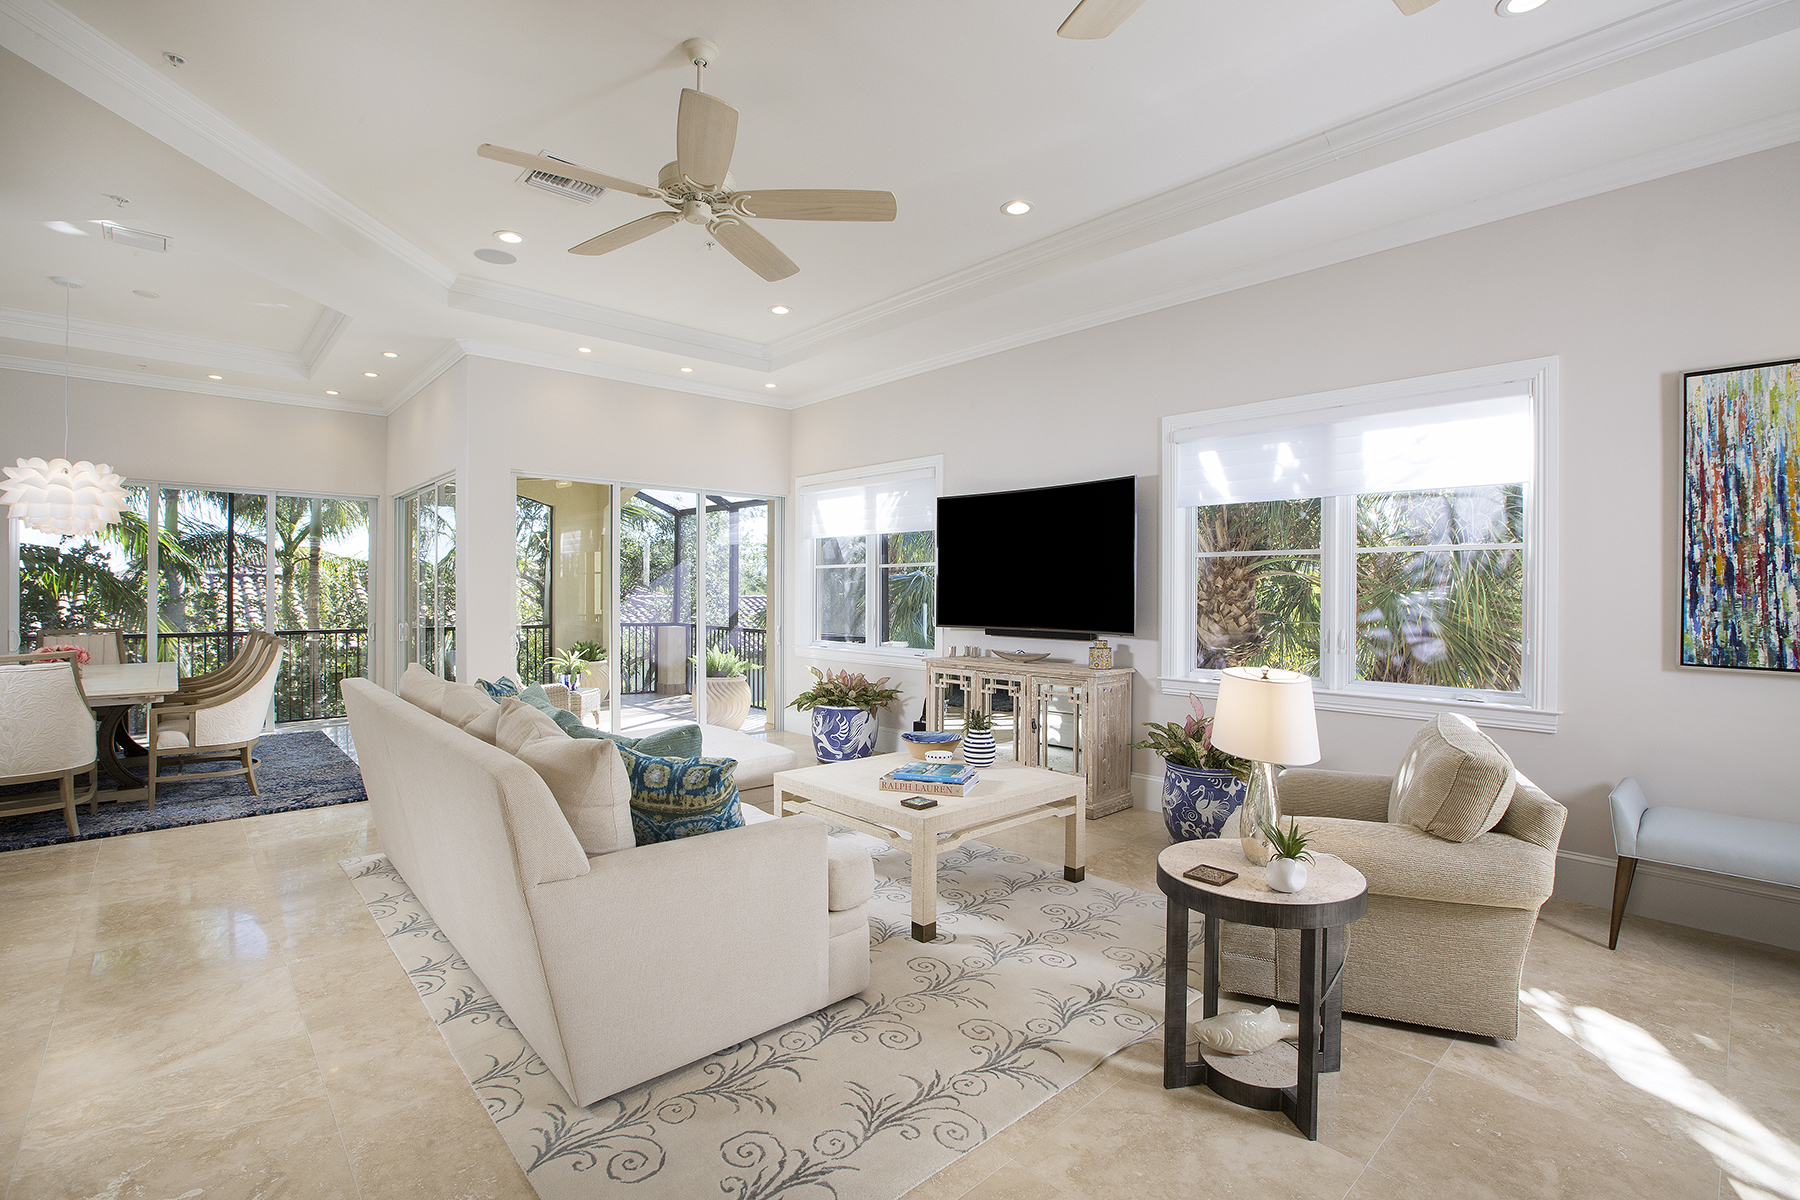 Condominium for Sale at Grey Oaks 2305 Residence Cir 202, Naples, Florida 34105 United States